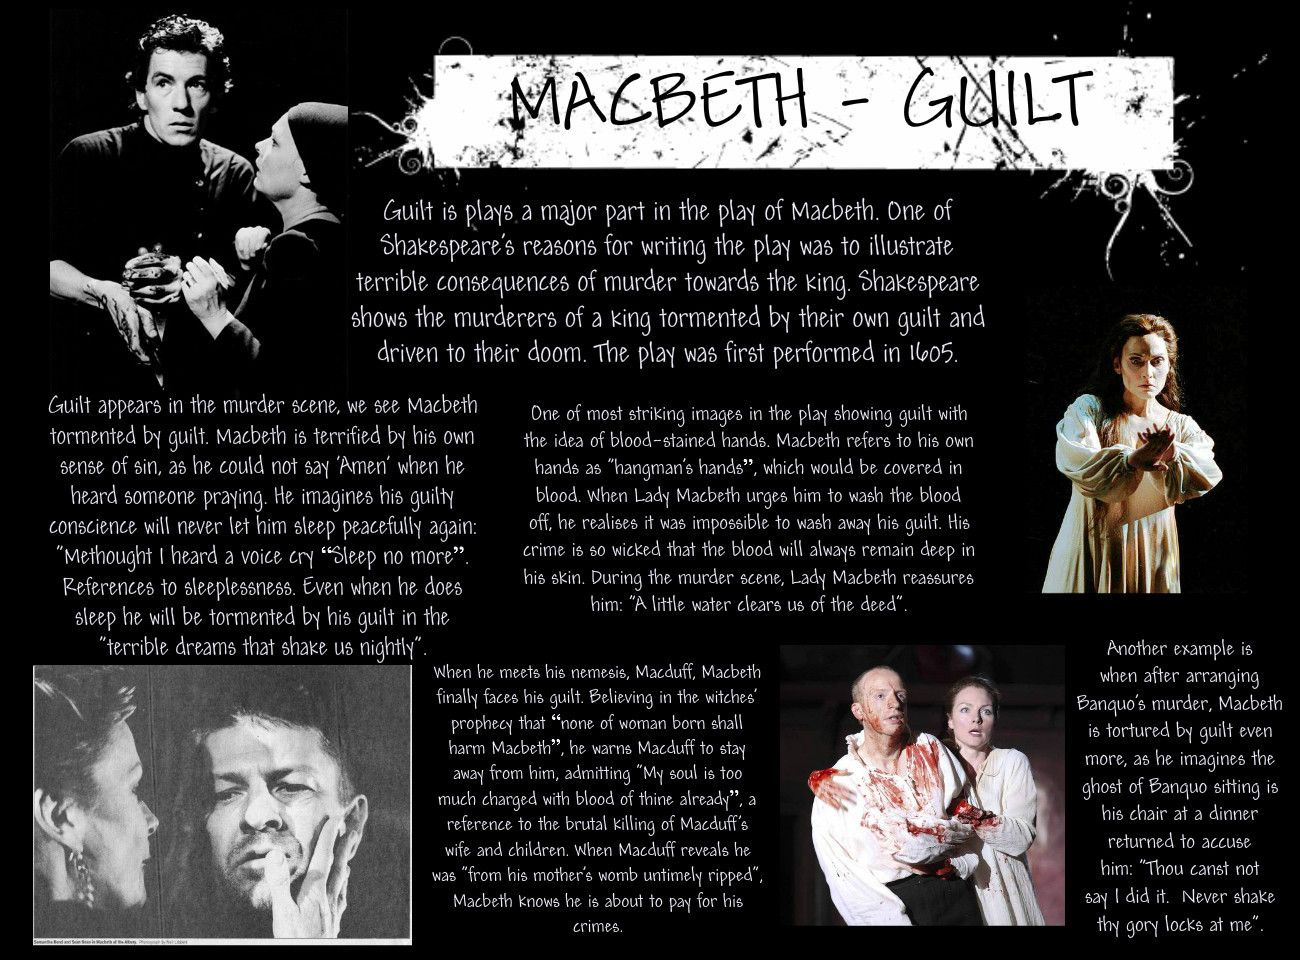 guilt a major theme in macbeth not only scene in macbeth when  a major theme in macbeth not only scene in macbeth when murdering duncan